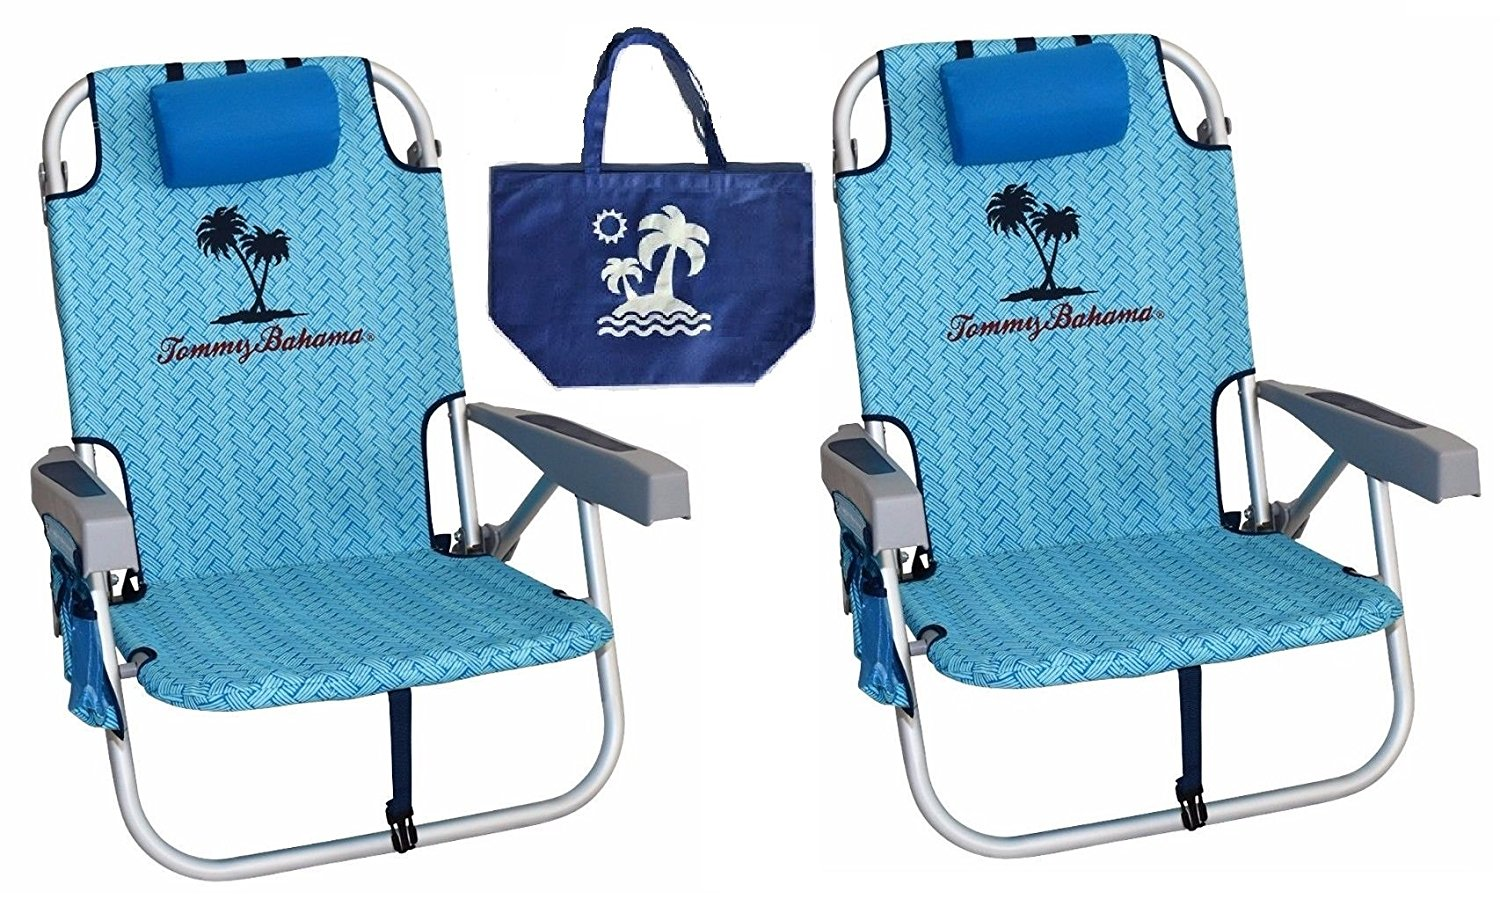 2 Tommy Bahama Backpack Beach Chairs/ Light Blue + 1 Medium Tote Bag